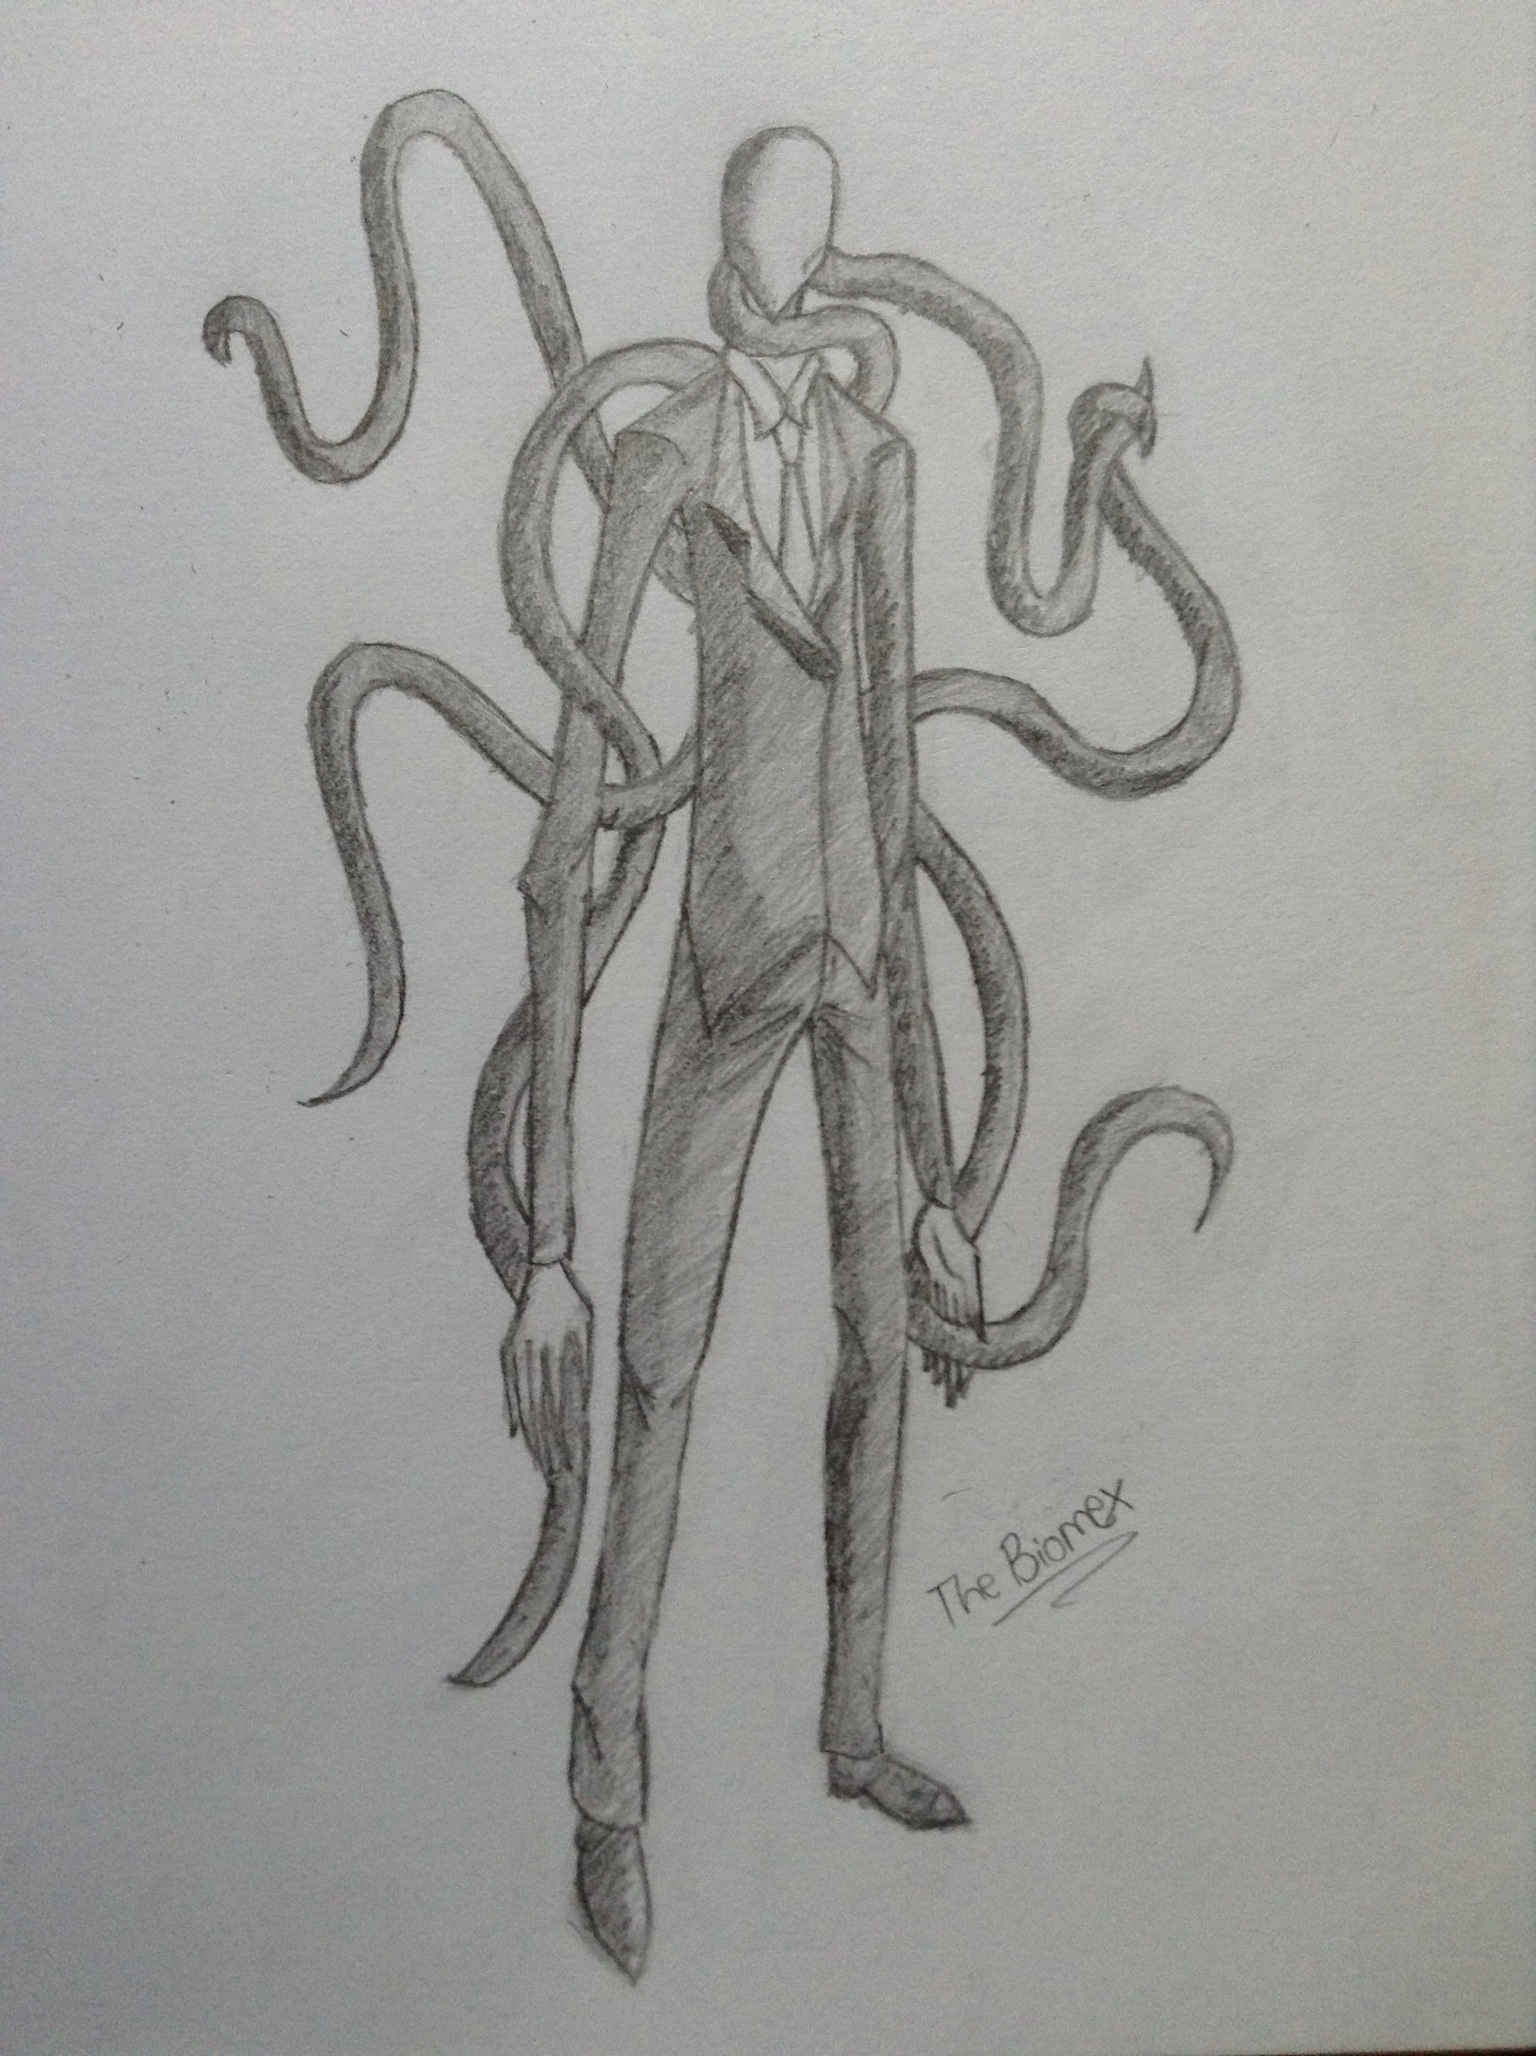 Drawn slenderman Slender The Man  sketchbook